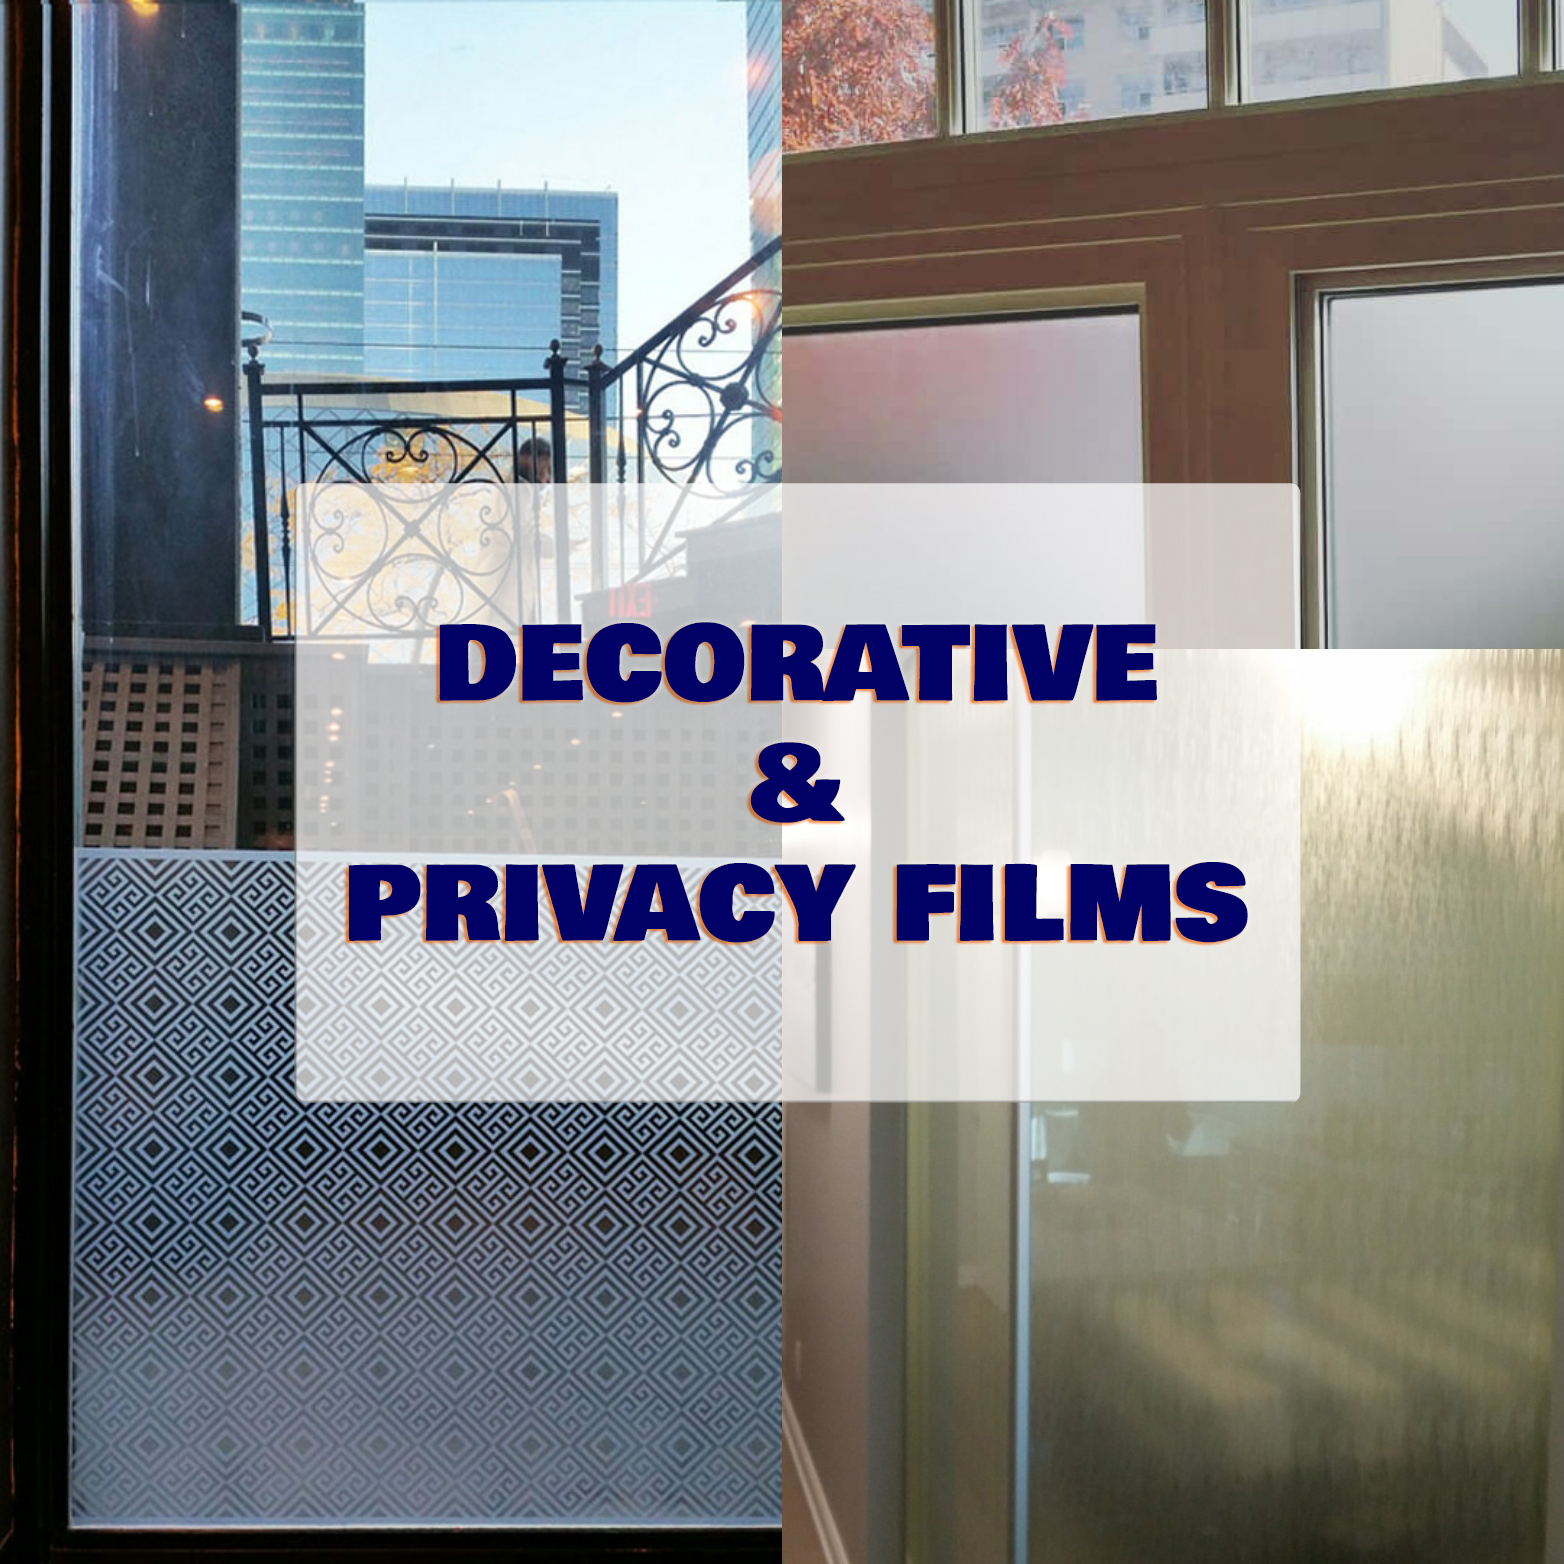 decorative and privacy films montage with heading overlay